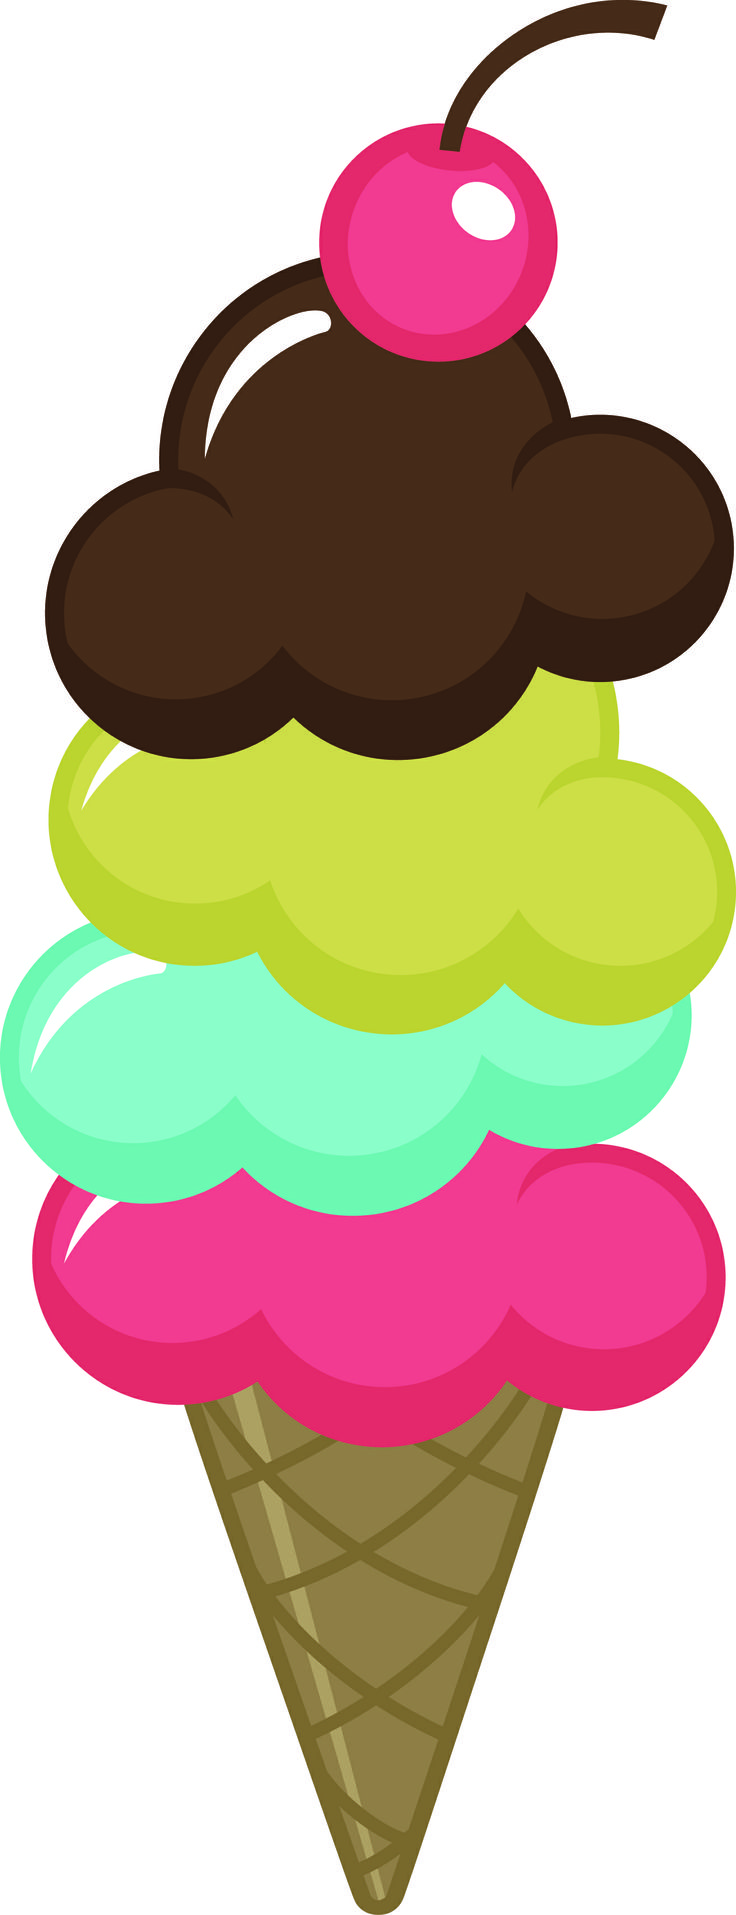 736x1915 Ice Cream Scoop Clipart 15